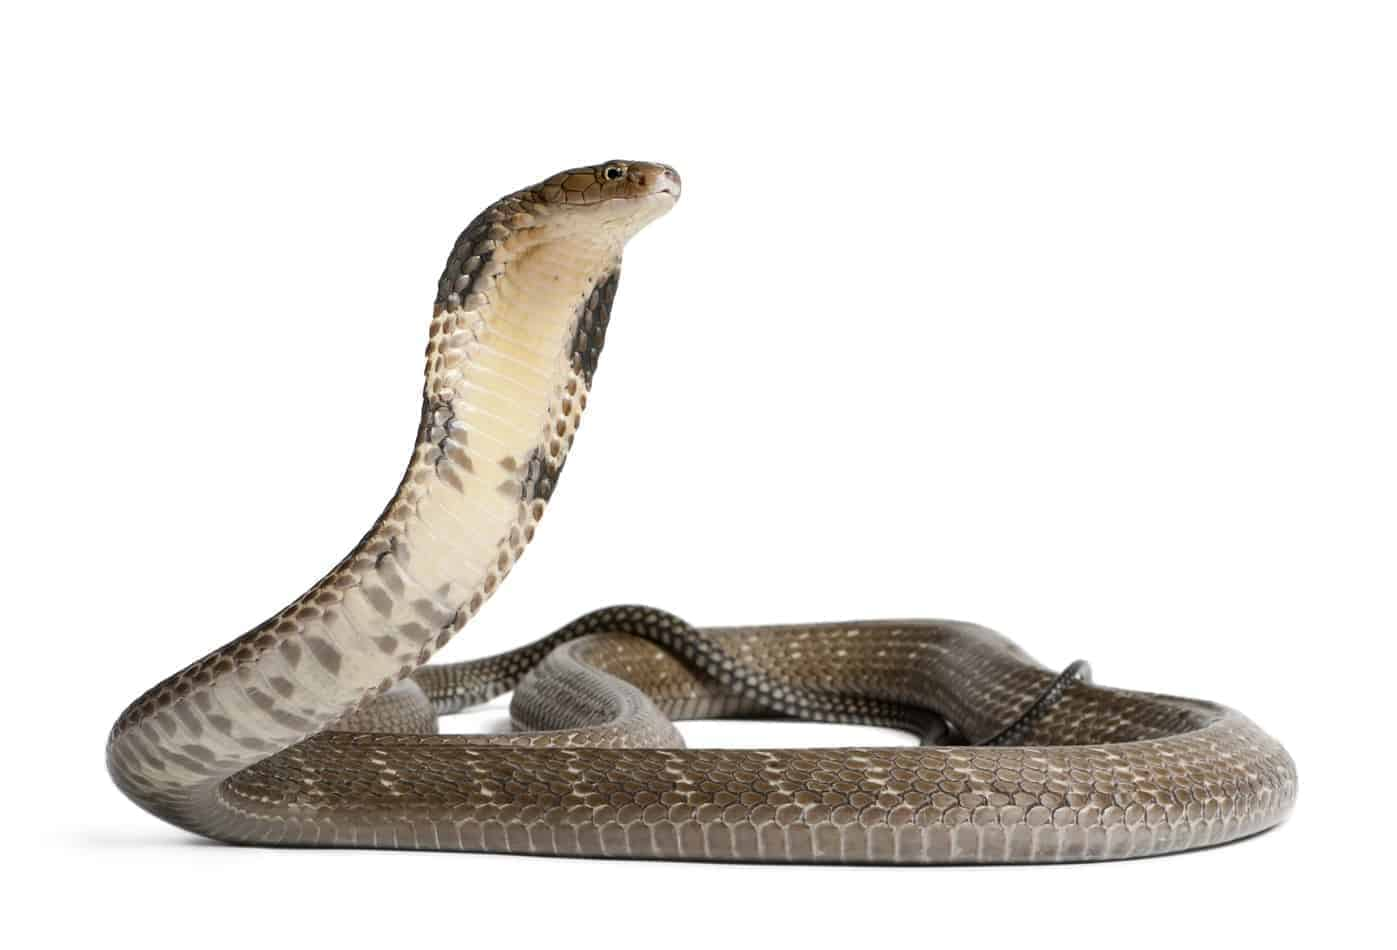 27 Interesting Facts About King Cobras (With Pictures)